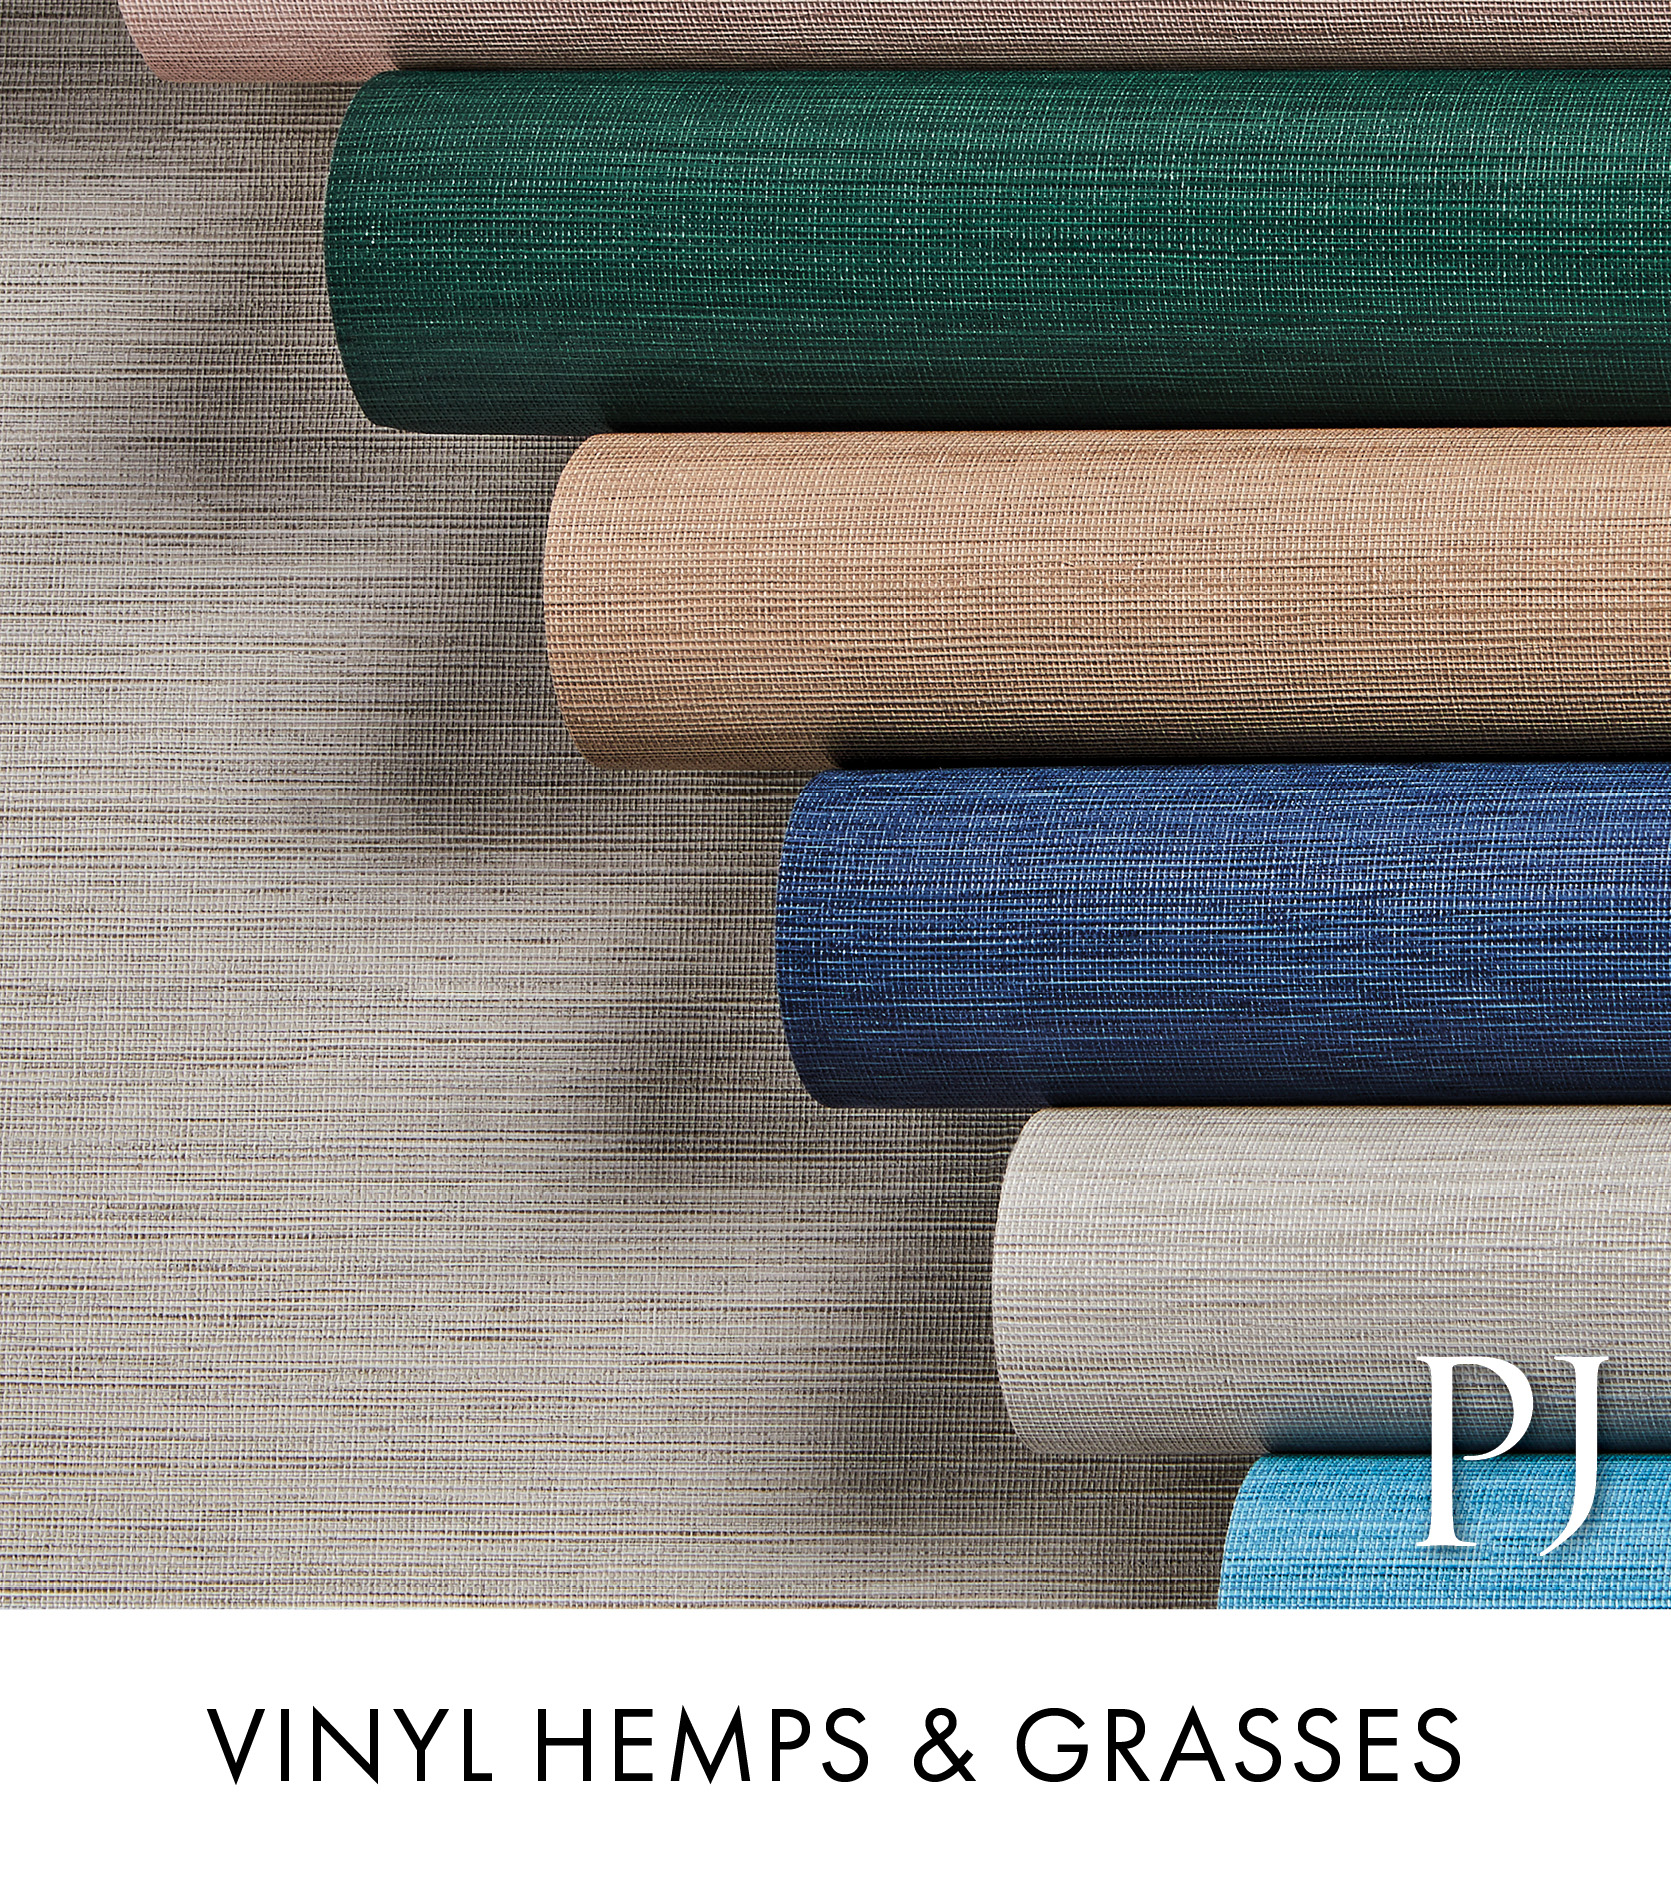 Vinyl Hemps and Grasses